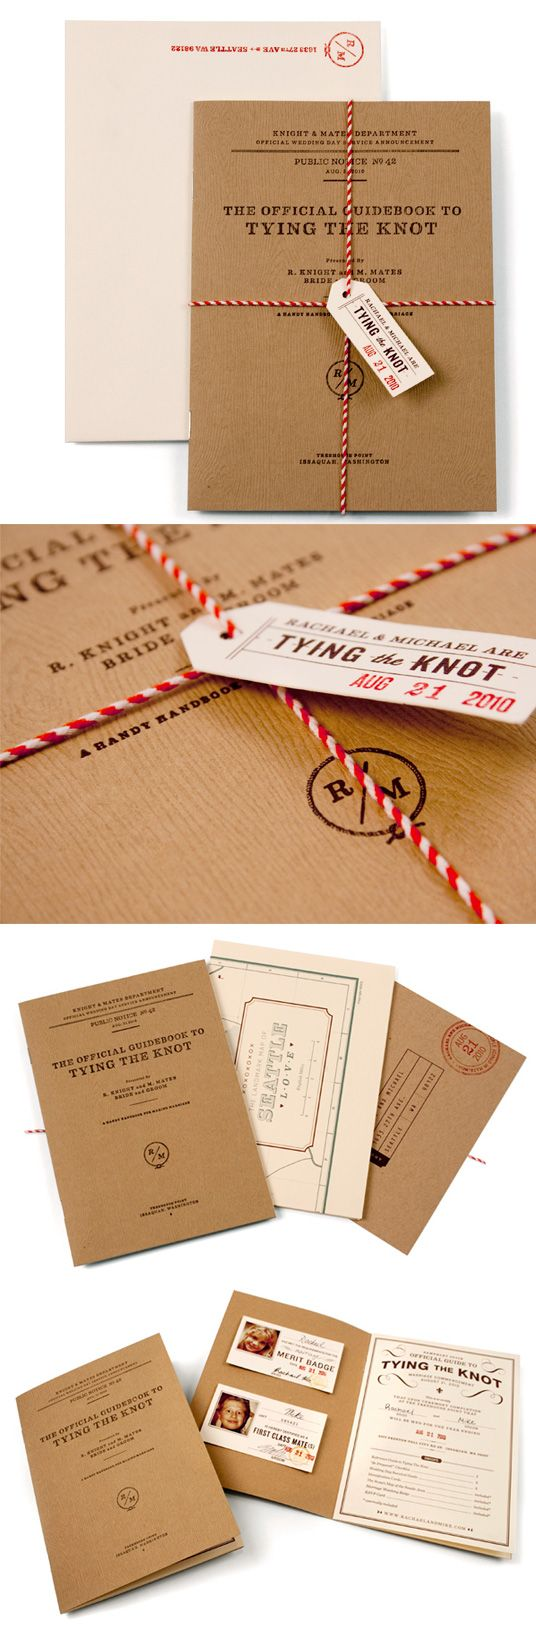 tying the knotIdeas, Ties The Knots, Kraft Paper, Brown Paper, Wedding Invitation Design, Tying The Knots, Bakers Twine, Wedding Invitations Design, Fields